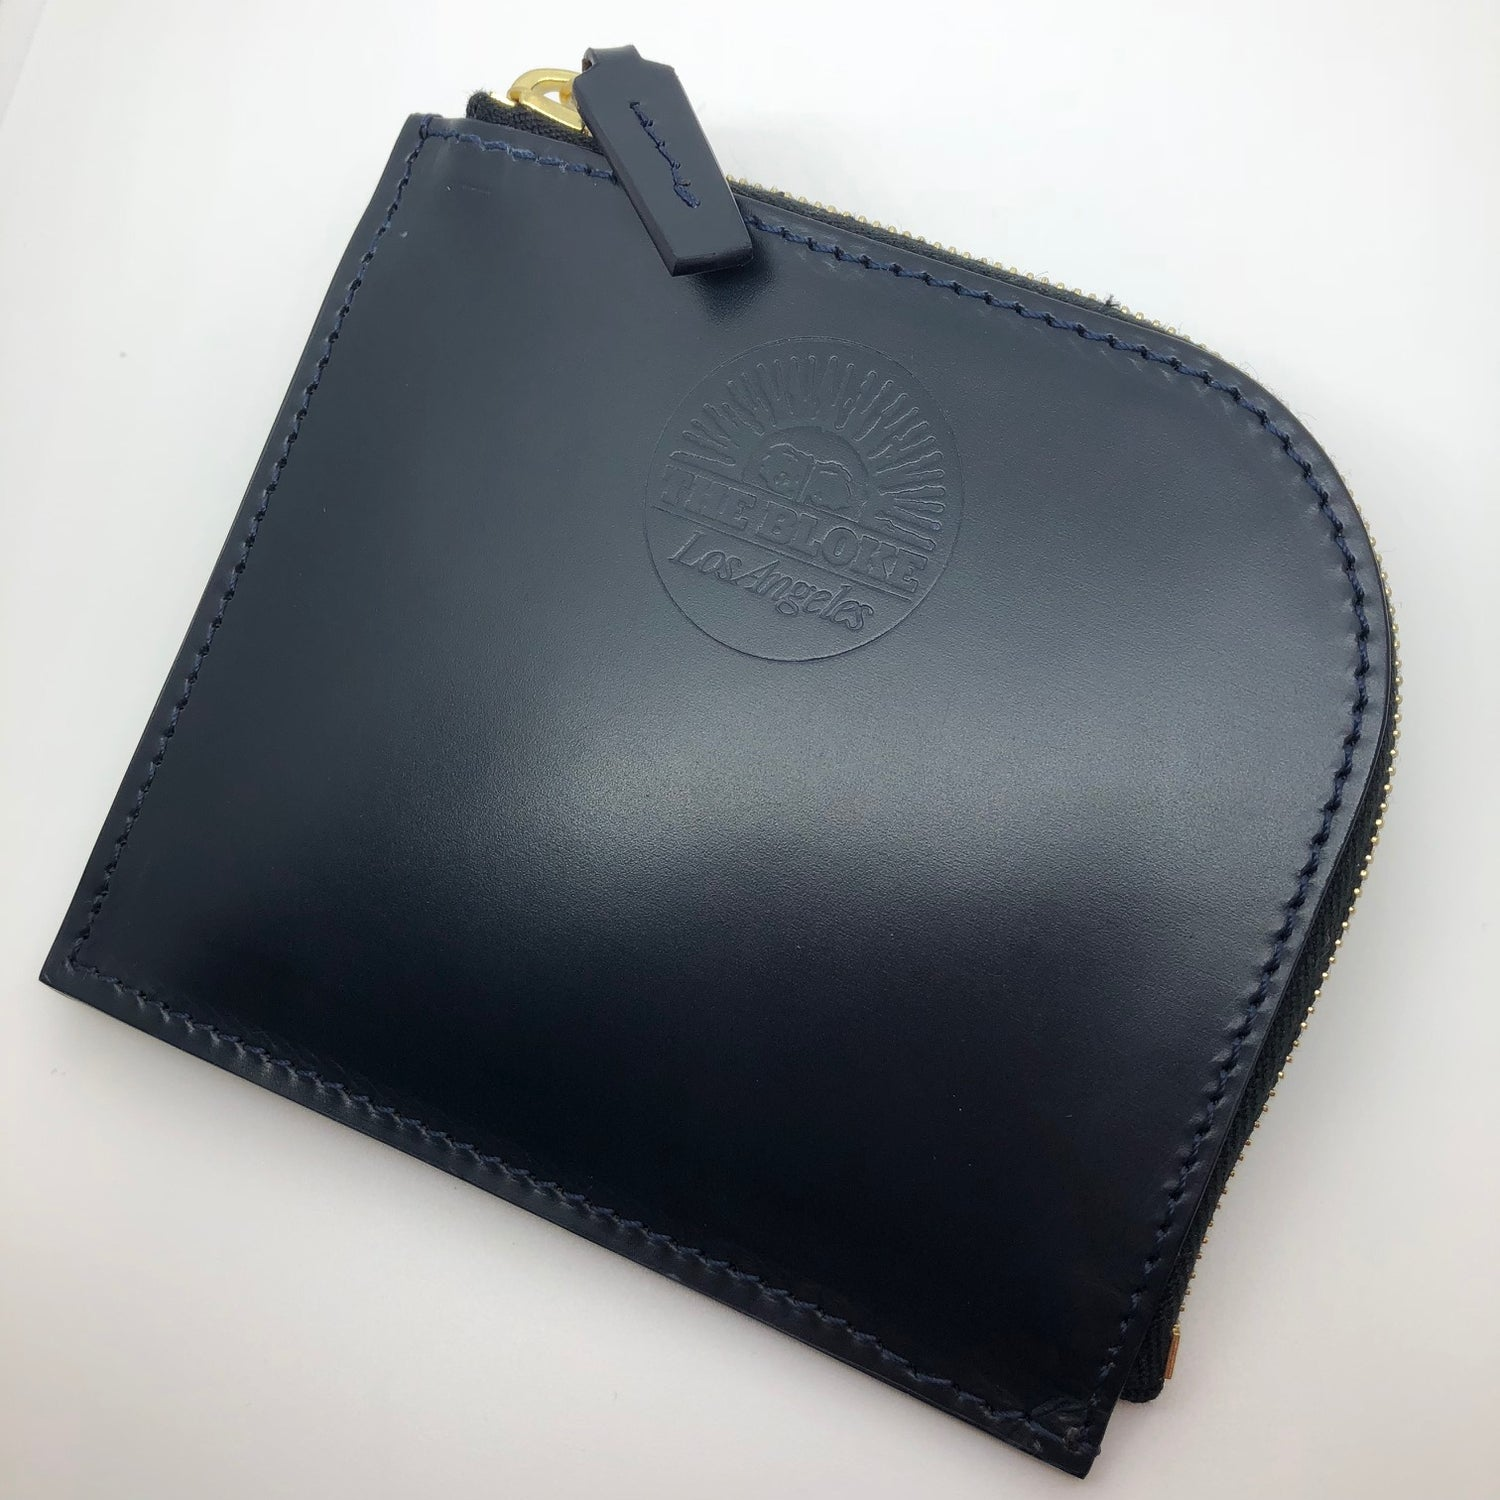 The Bloke X Simpson London Zip Wallet